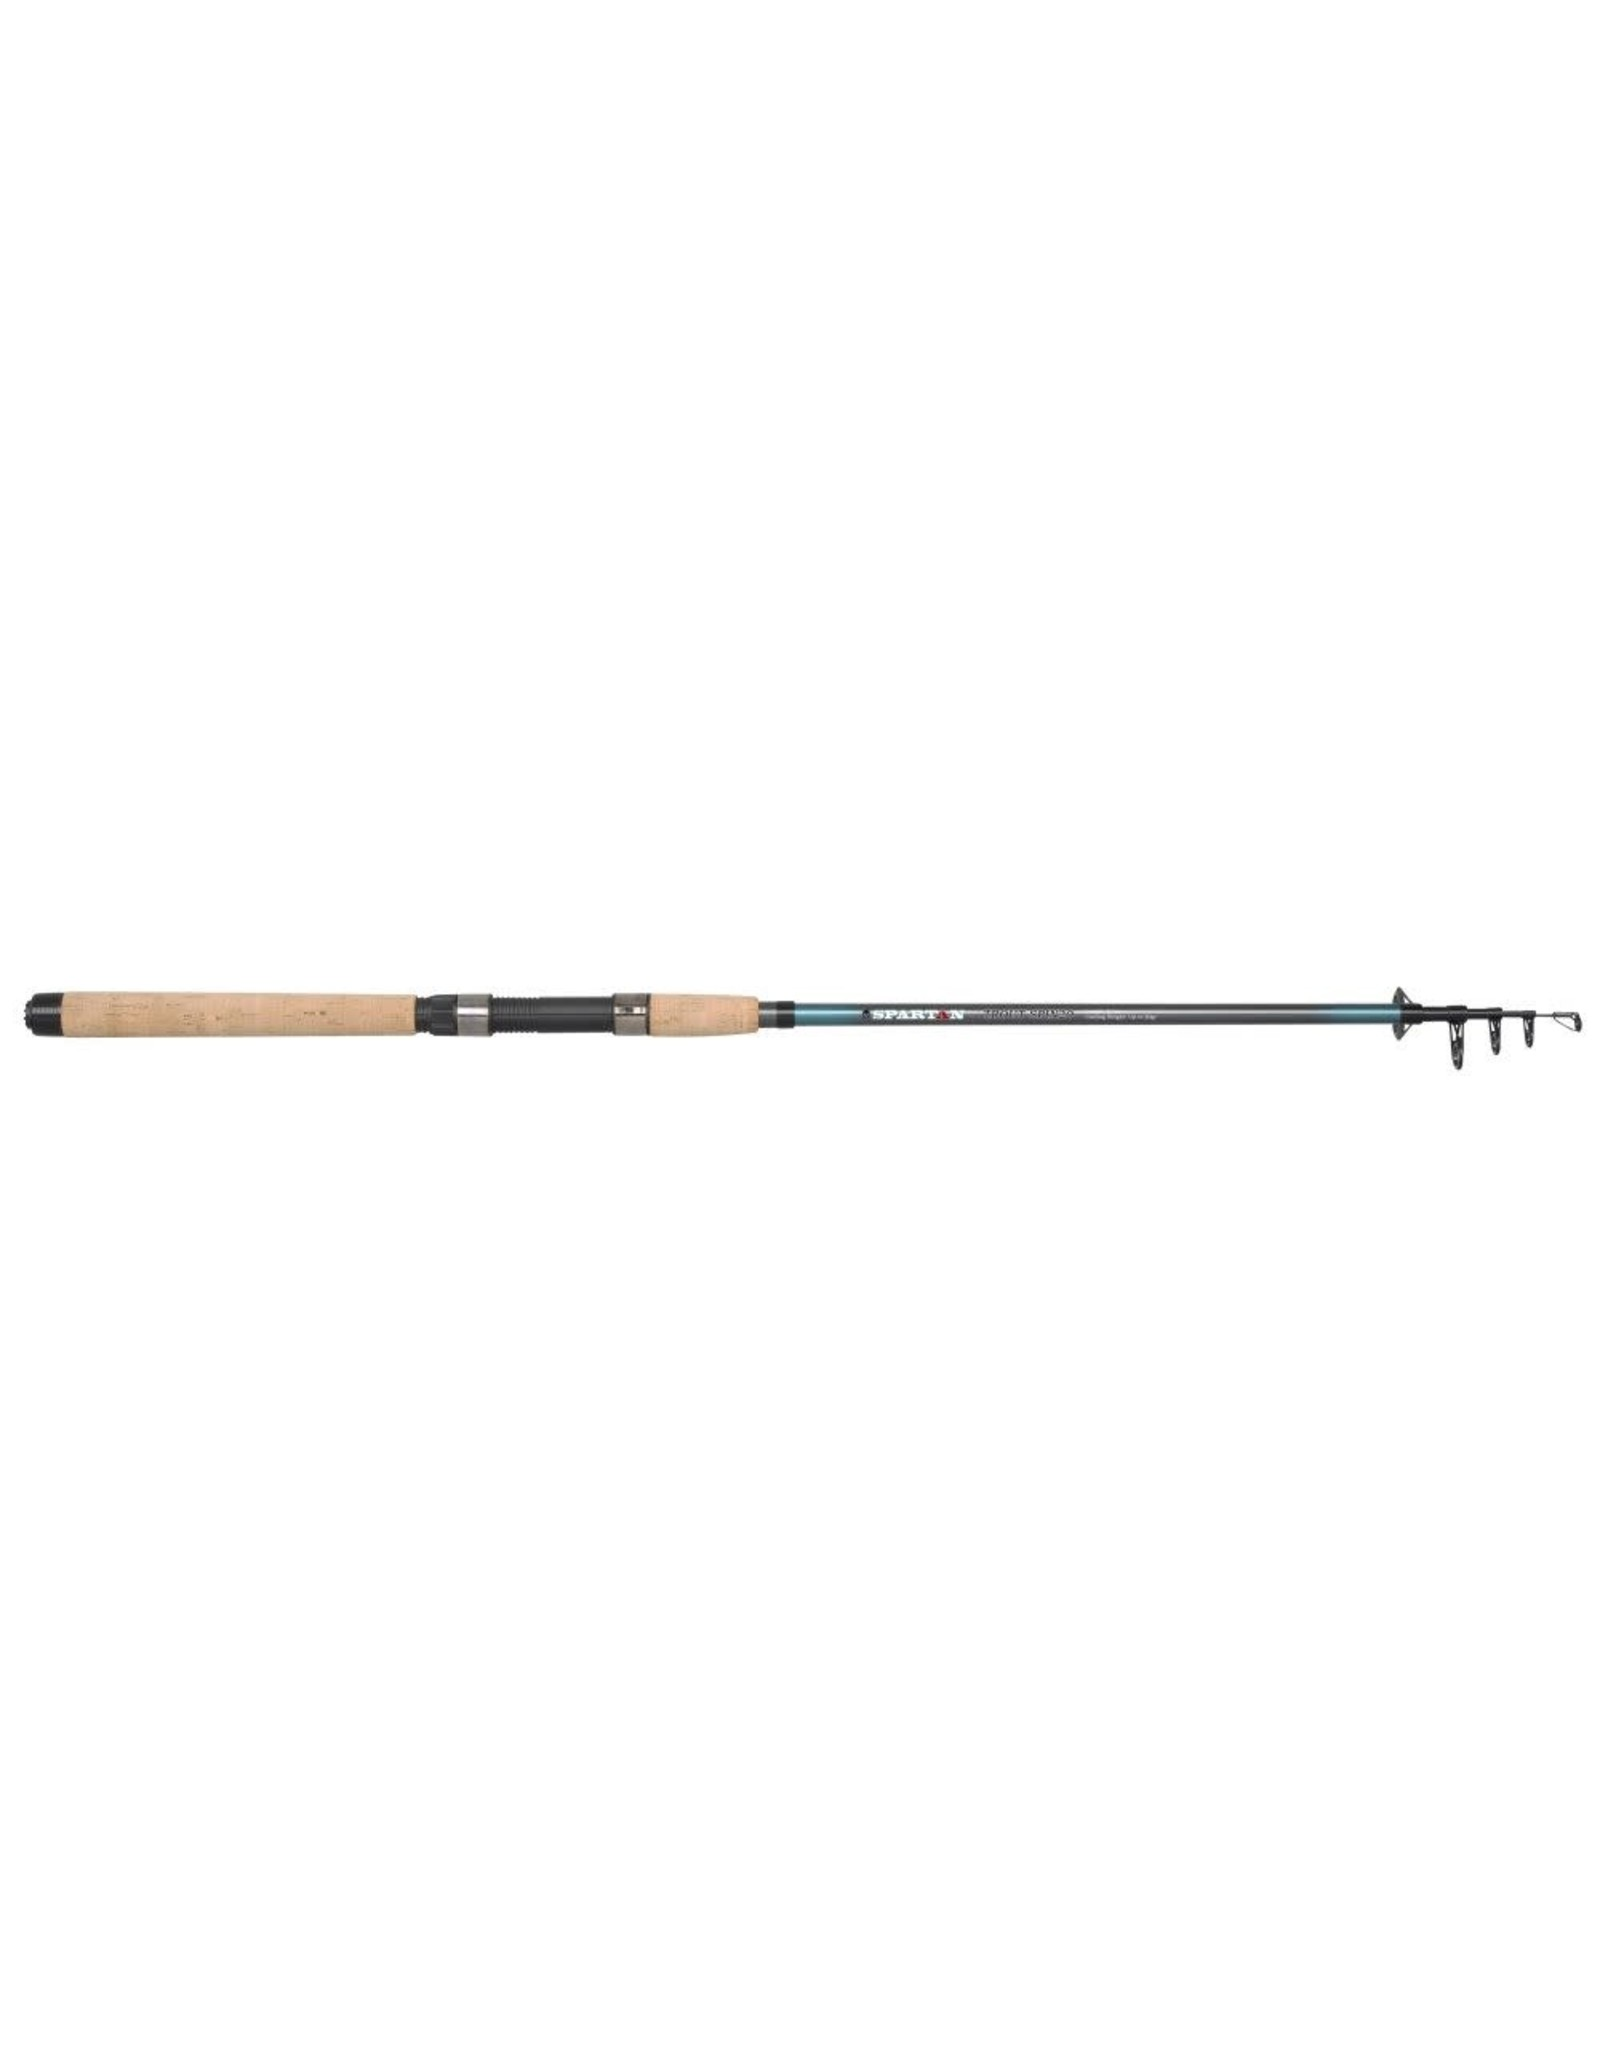 SPRO SPARTAN TROUTSPIN TELE 2.40M 30G